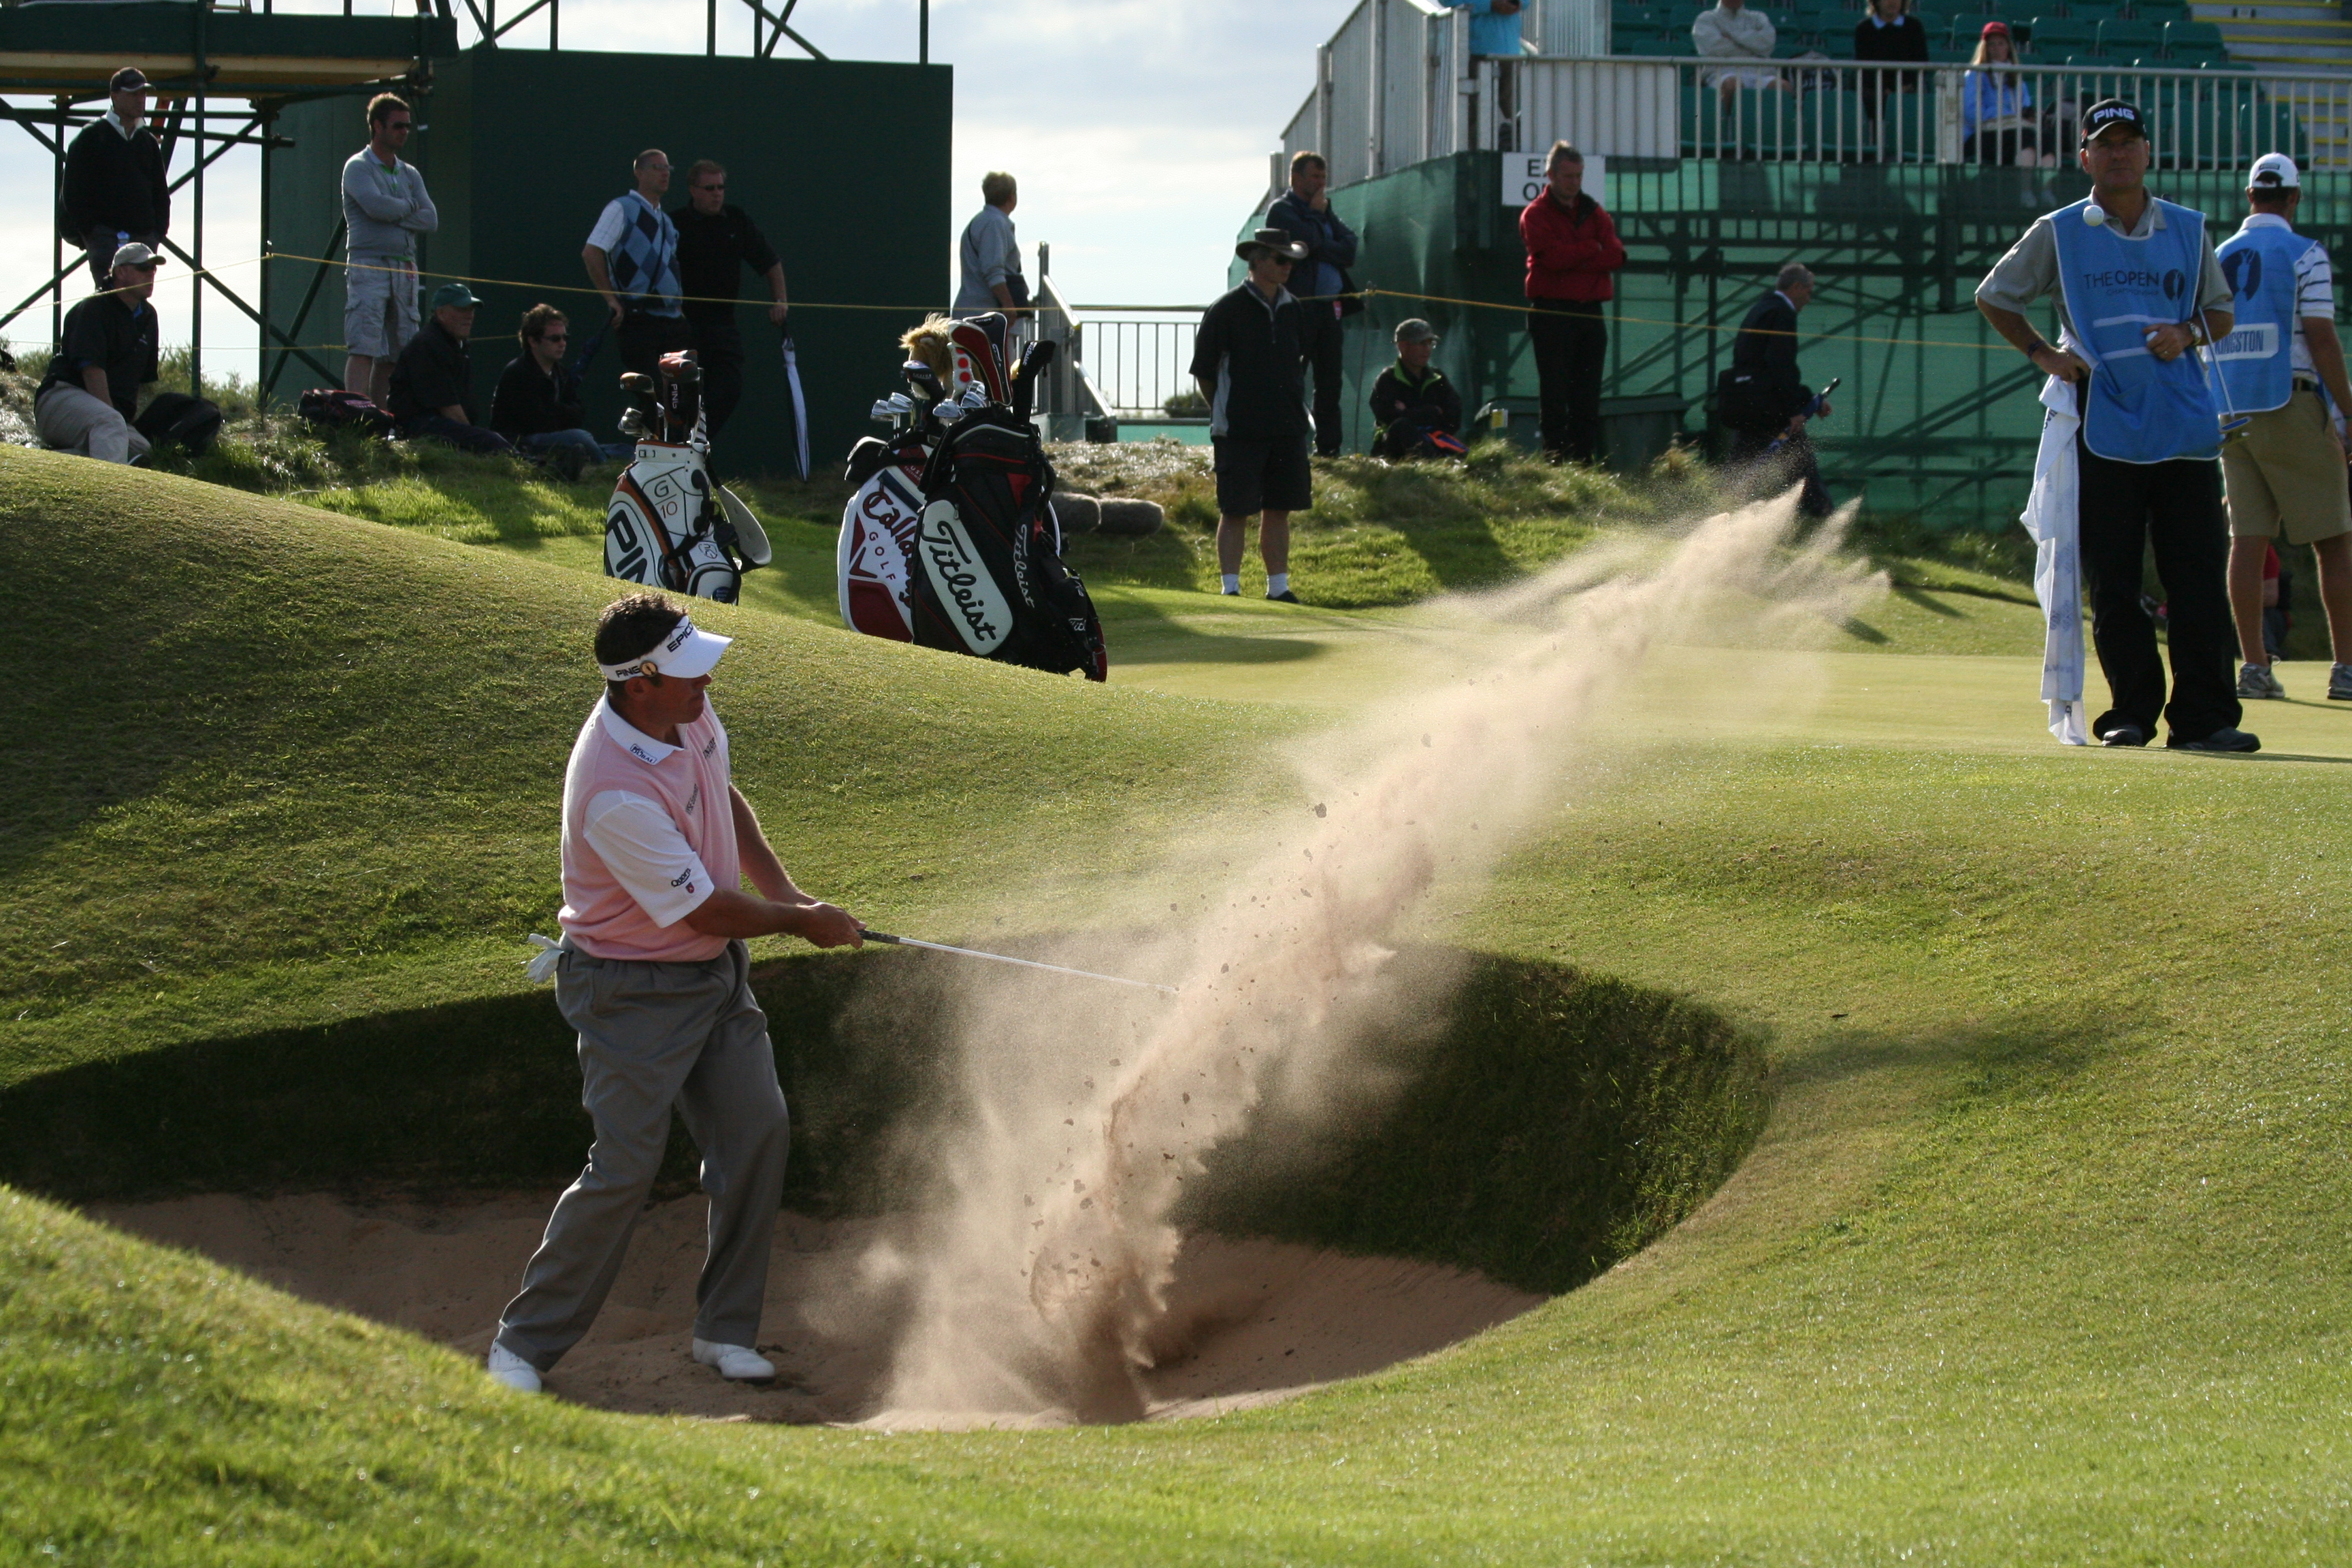 File:Lee Westwood bunker.jpg - Wikimedia Commons